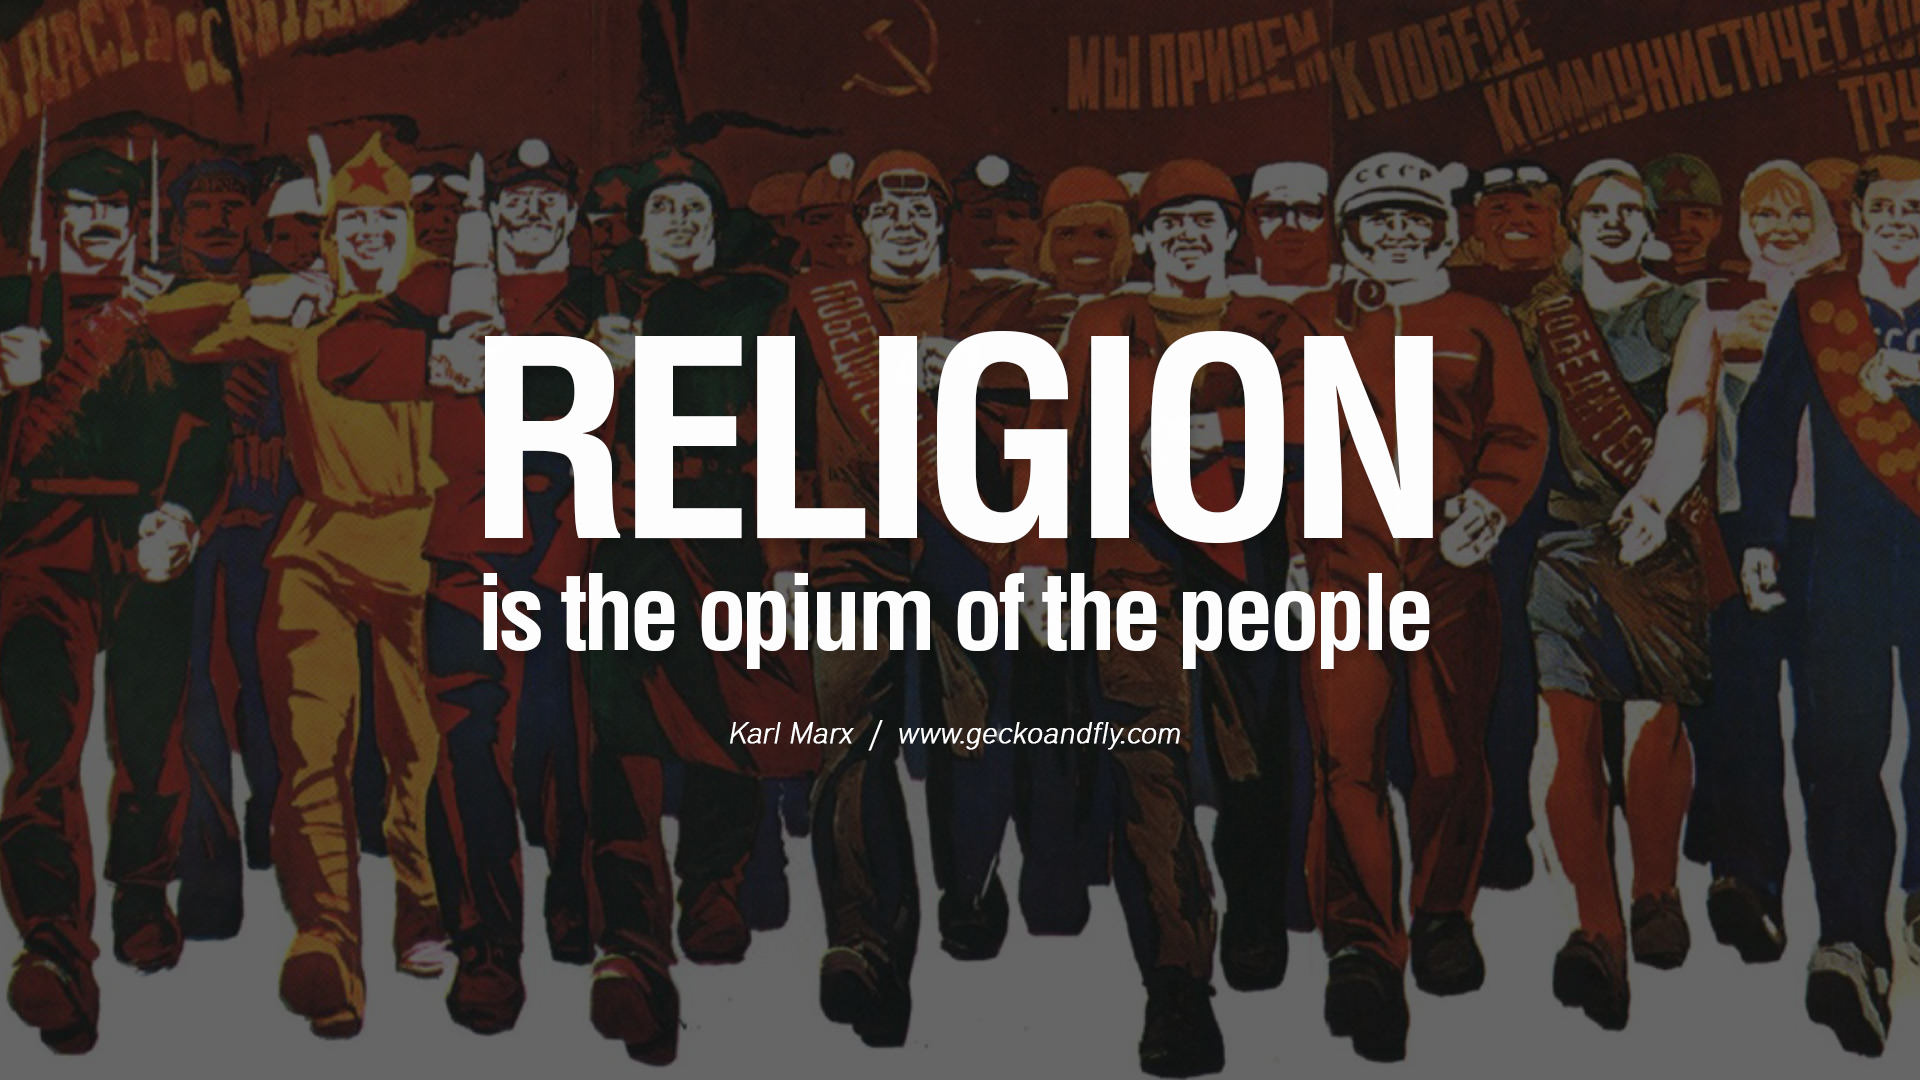 religion is an opium essay